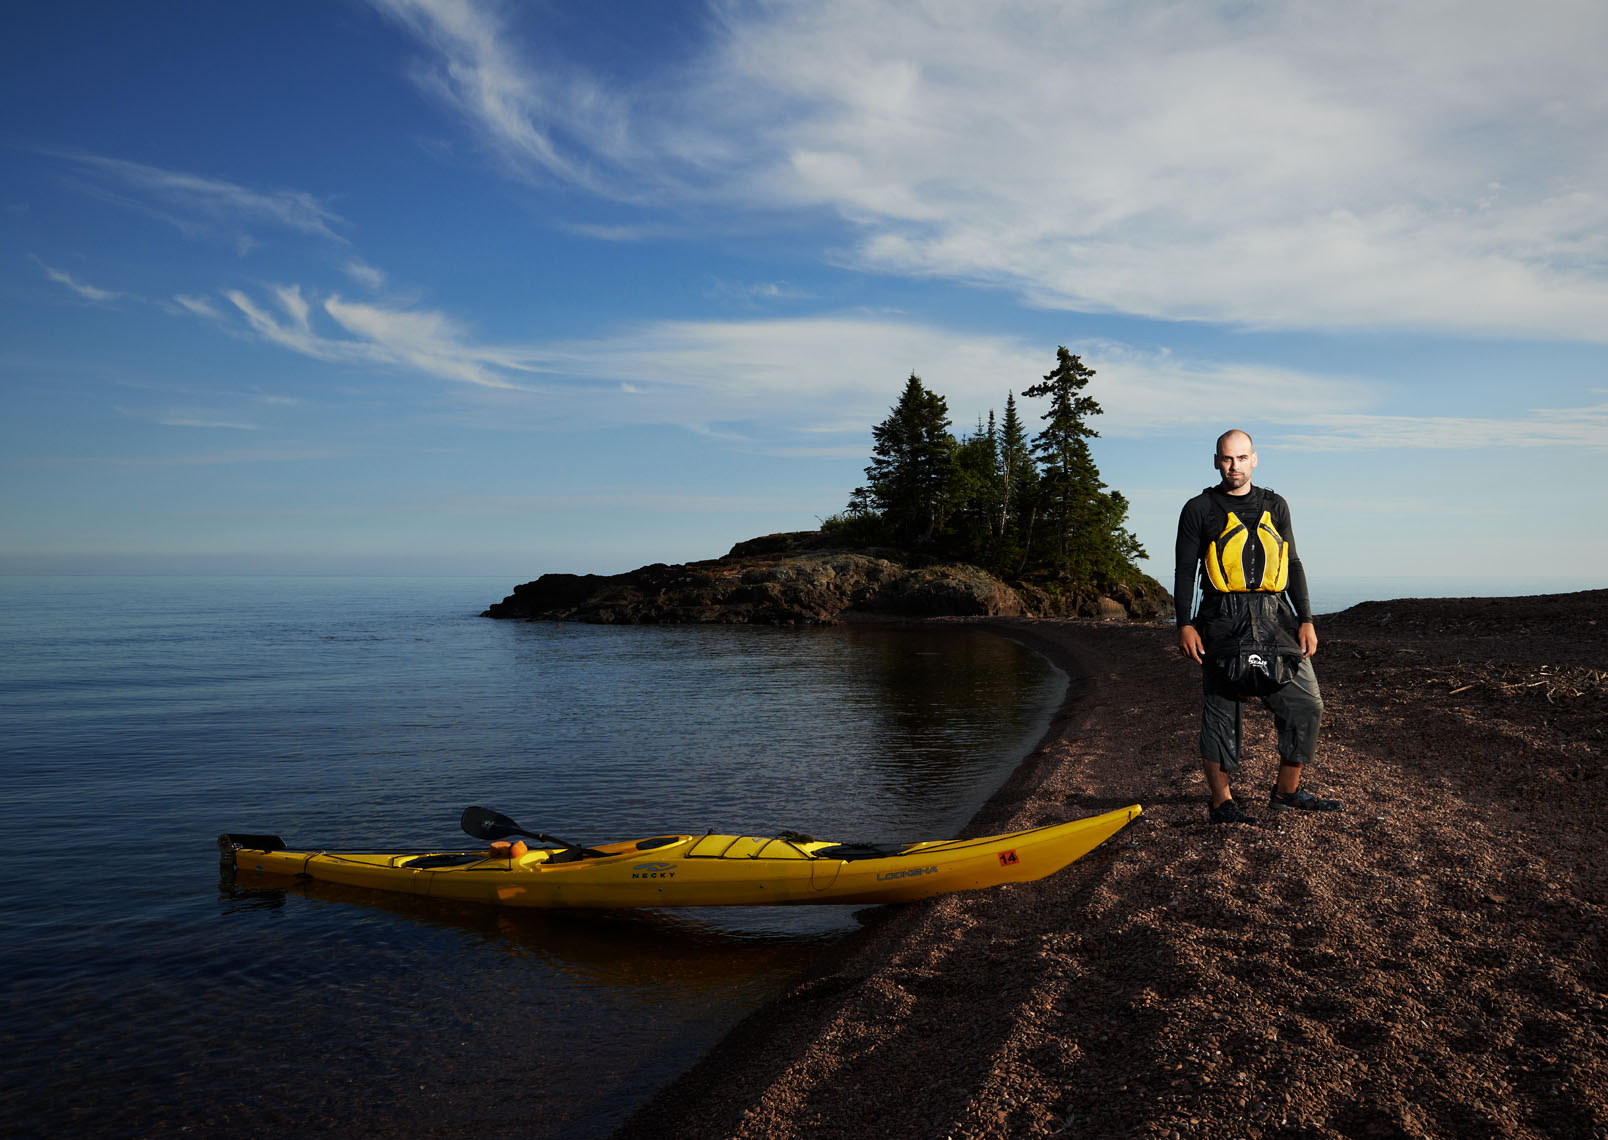 Lake Superior Kayaker North Shore portrait